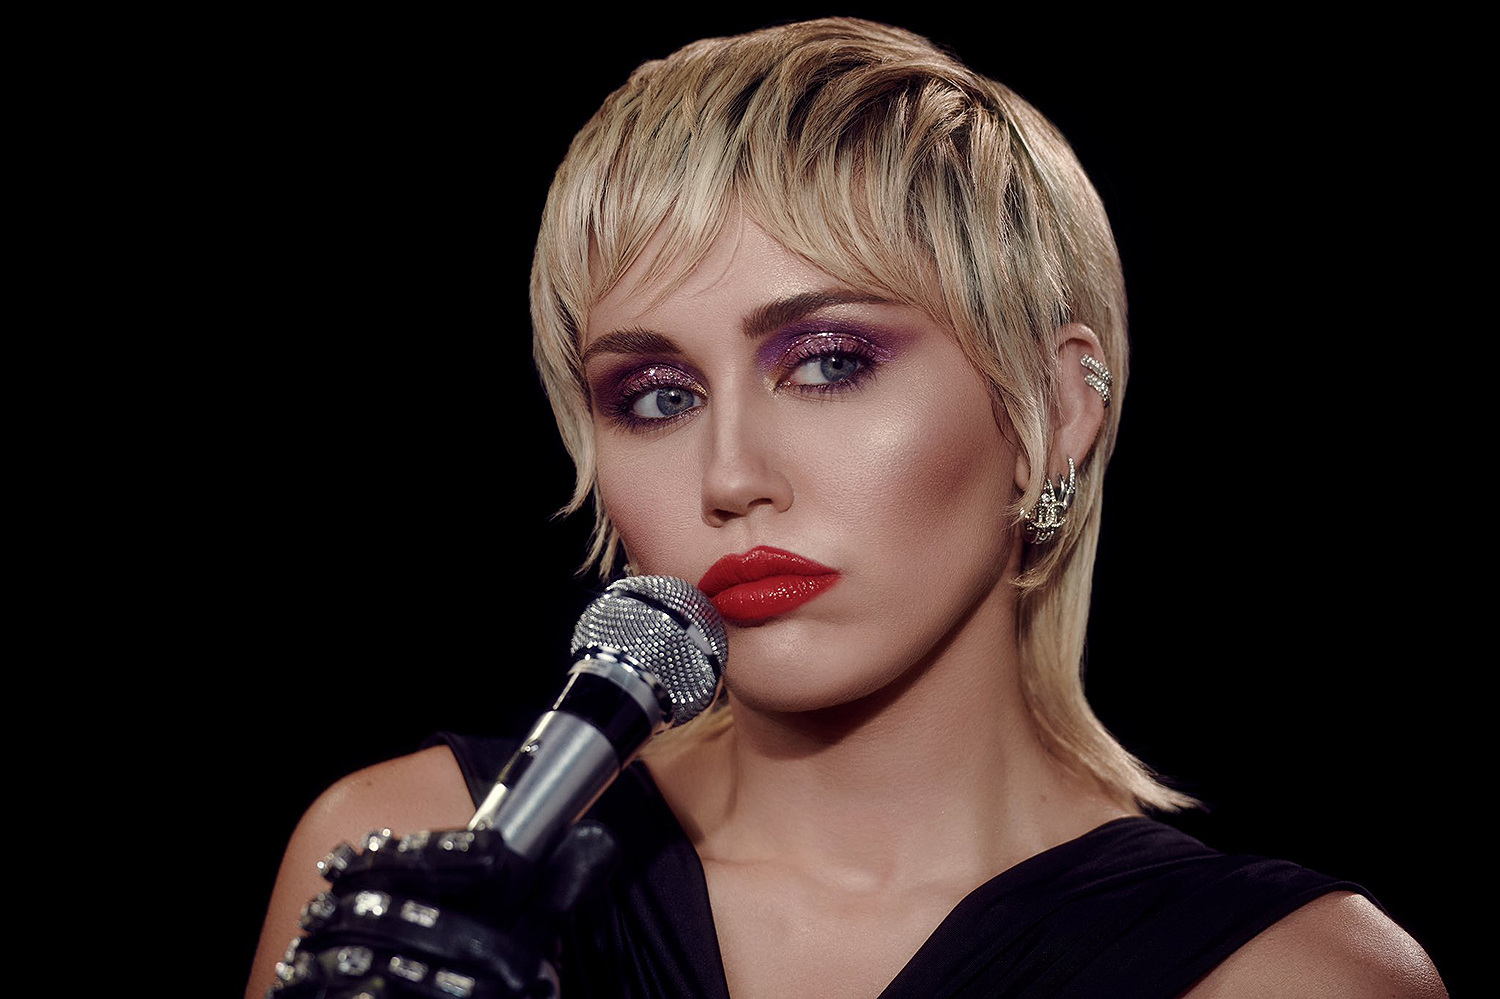 miley-cyrus-prepared-like-a-madwoman-for-her-super-bowl-performance-details